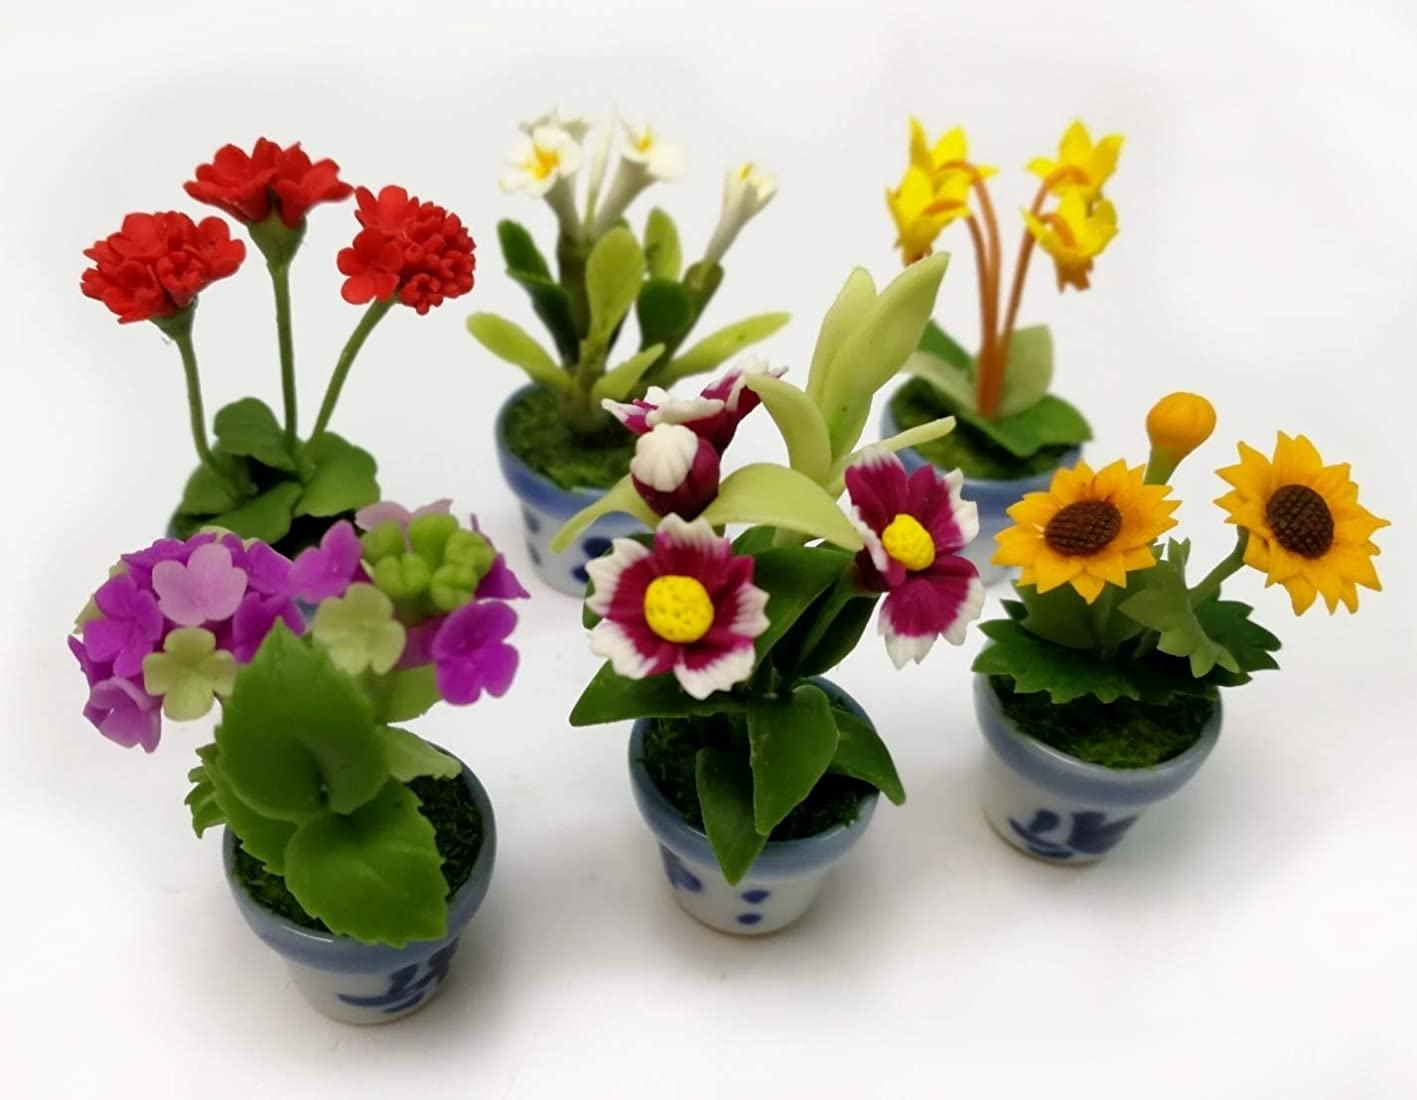 thebestbuy Set of 6 Dollhouse Miniature Variety 1:12 Scale Plant Flower Home Decor jsomfmphefx693